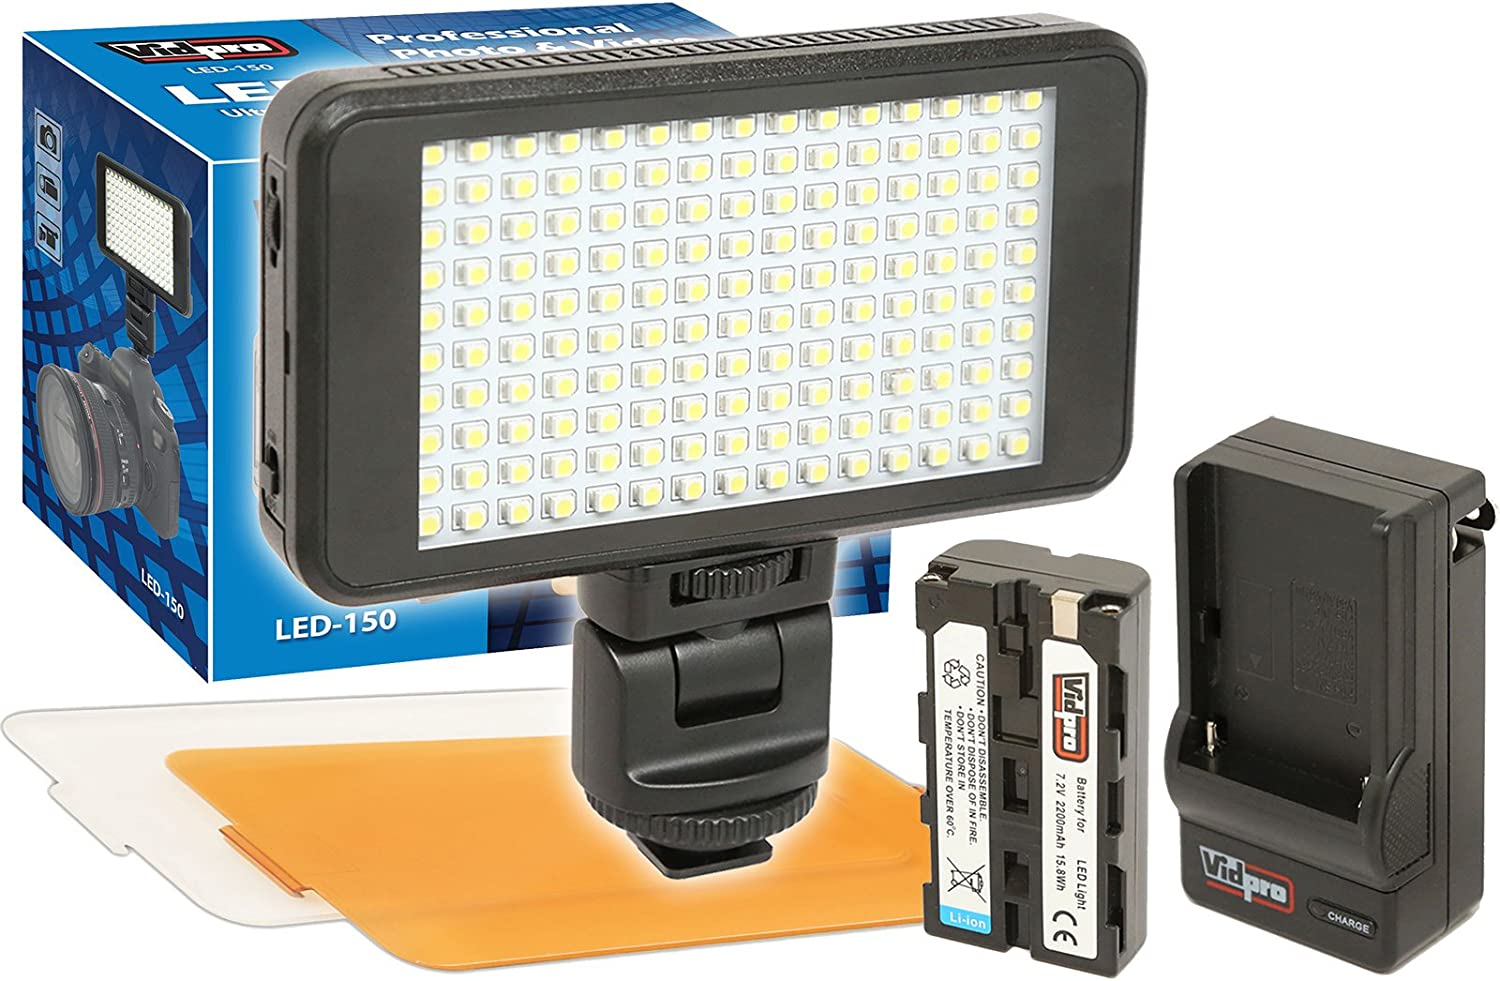 VidPro Ultra-Slim LED-150 On-Camera Video Lighting Kit